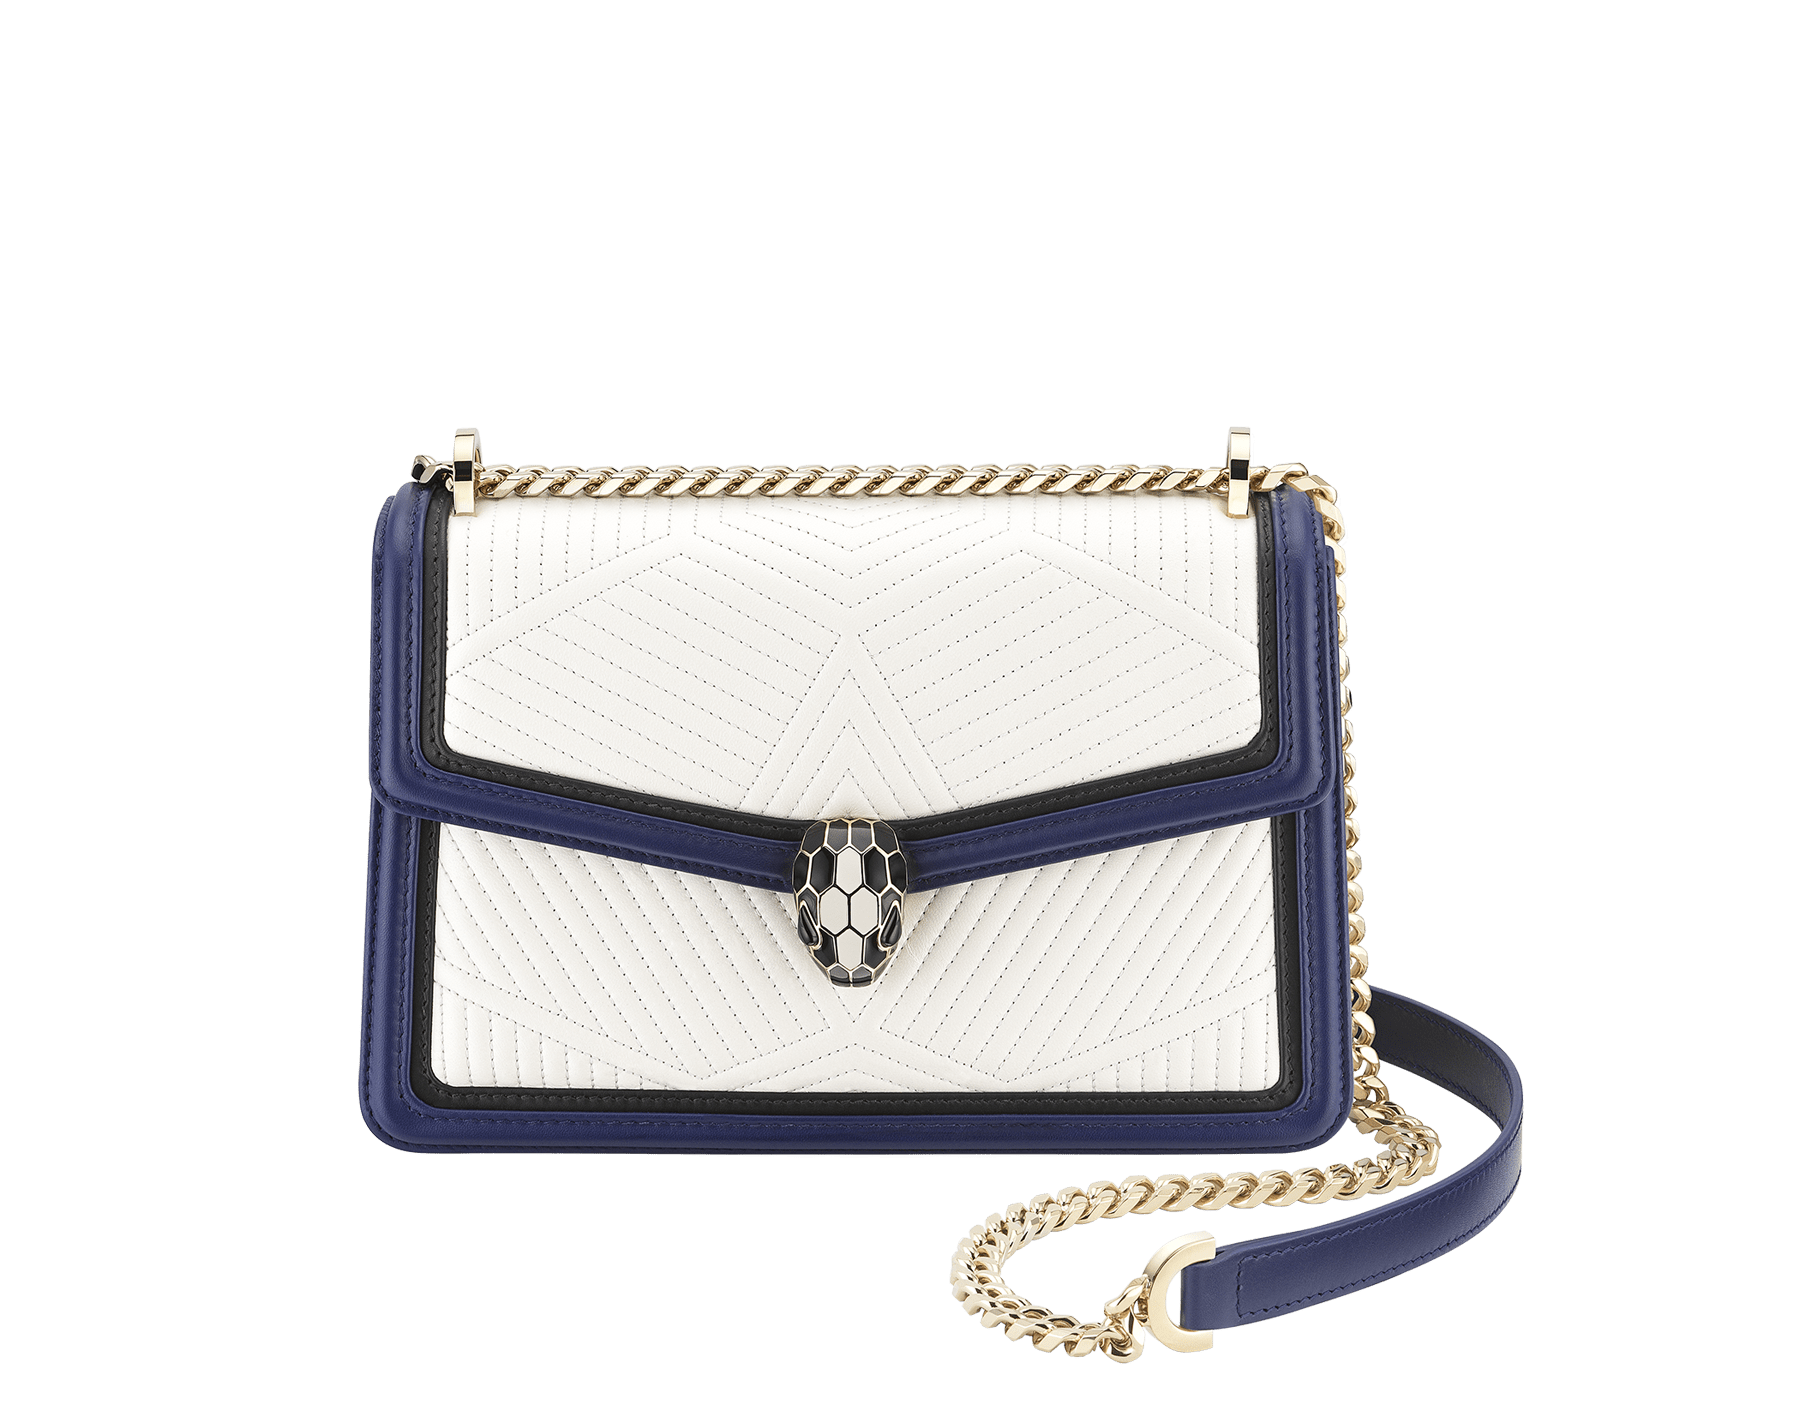 """Serpenti Diamond Blast"" shoulder bag in quilted, agate-white nappa leather with Royal Sapphire blue and black calfskin edging and Royal Sapphire blue nappa leather inner lining. Iconic snakehead closure in light gold-plated brass embellished with black and agate-white enamel and black onyx eyes. 922-FQDb image 2"